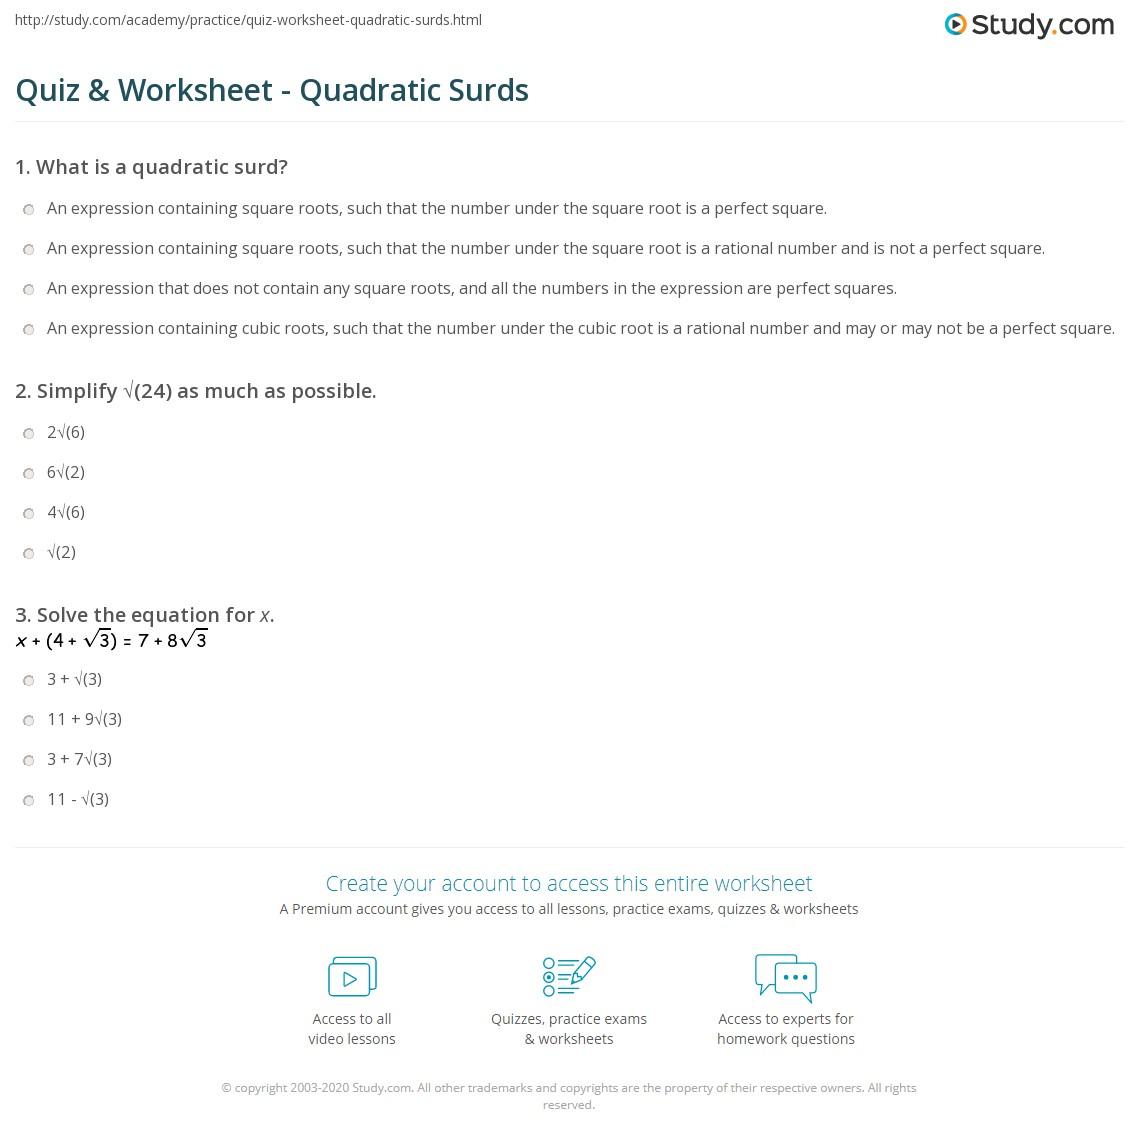 Quiz Worksheet Quadratic Surds Study